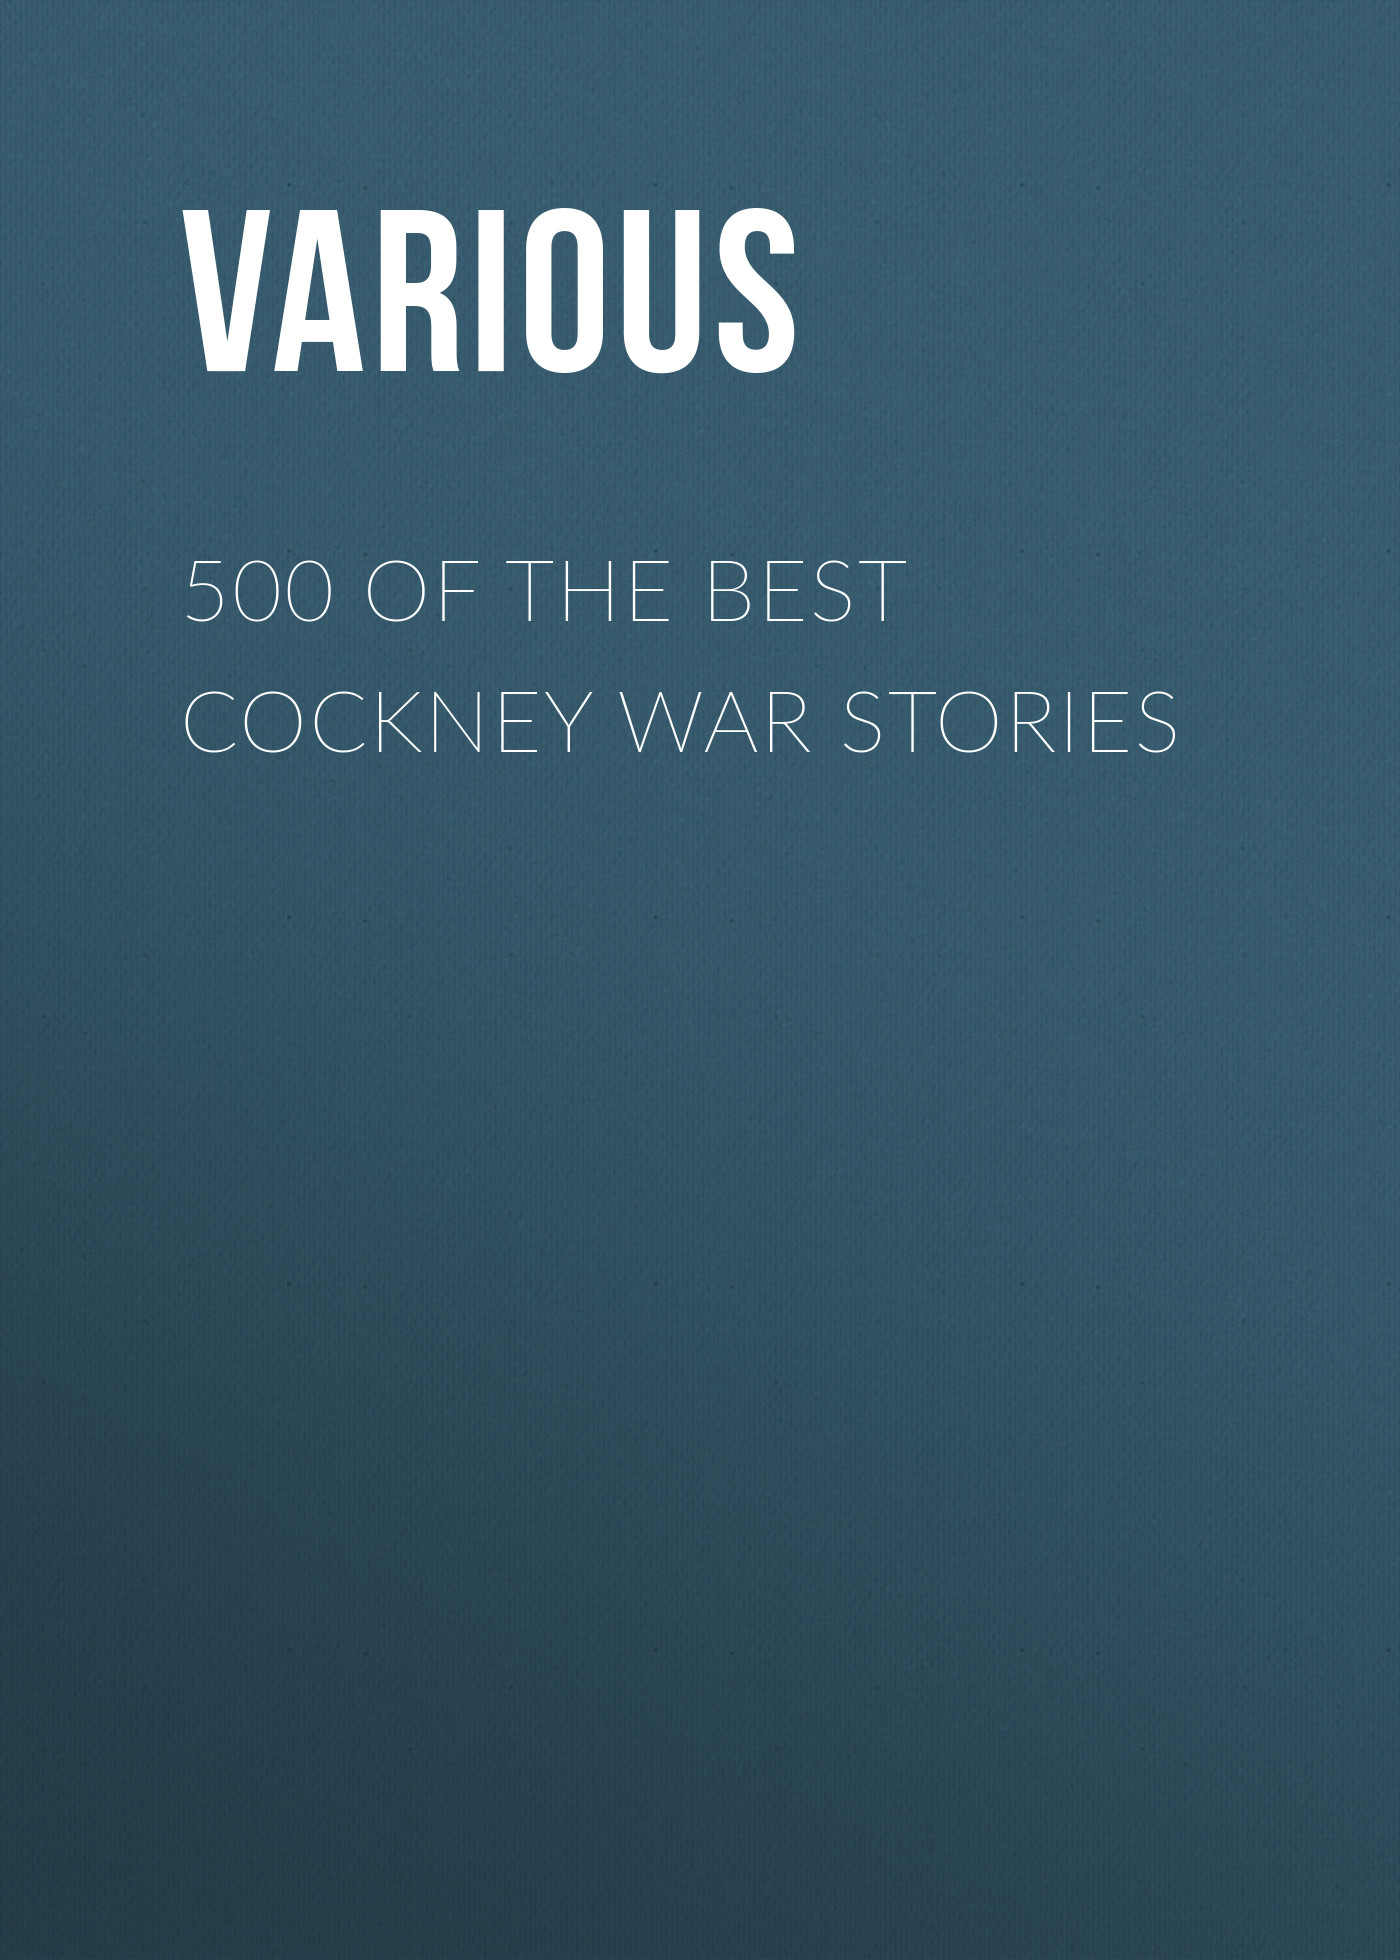 Various 500 of the Best Cockney War Stories 25 best stories